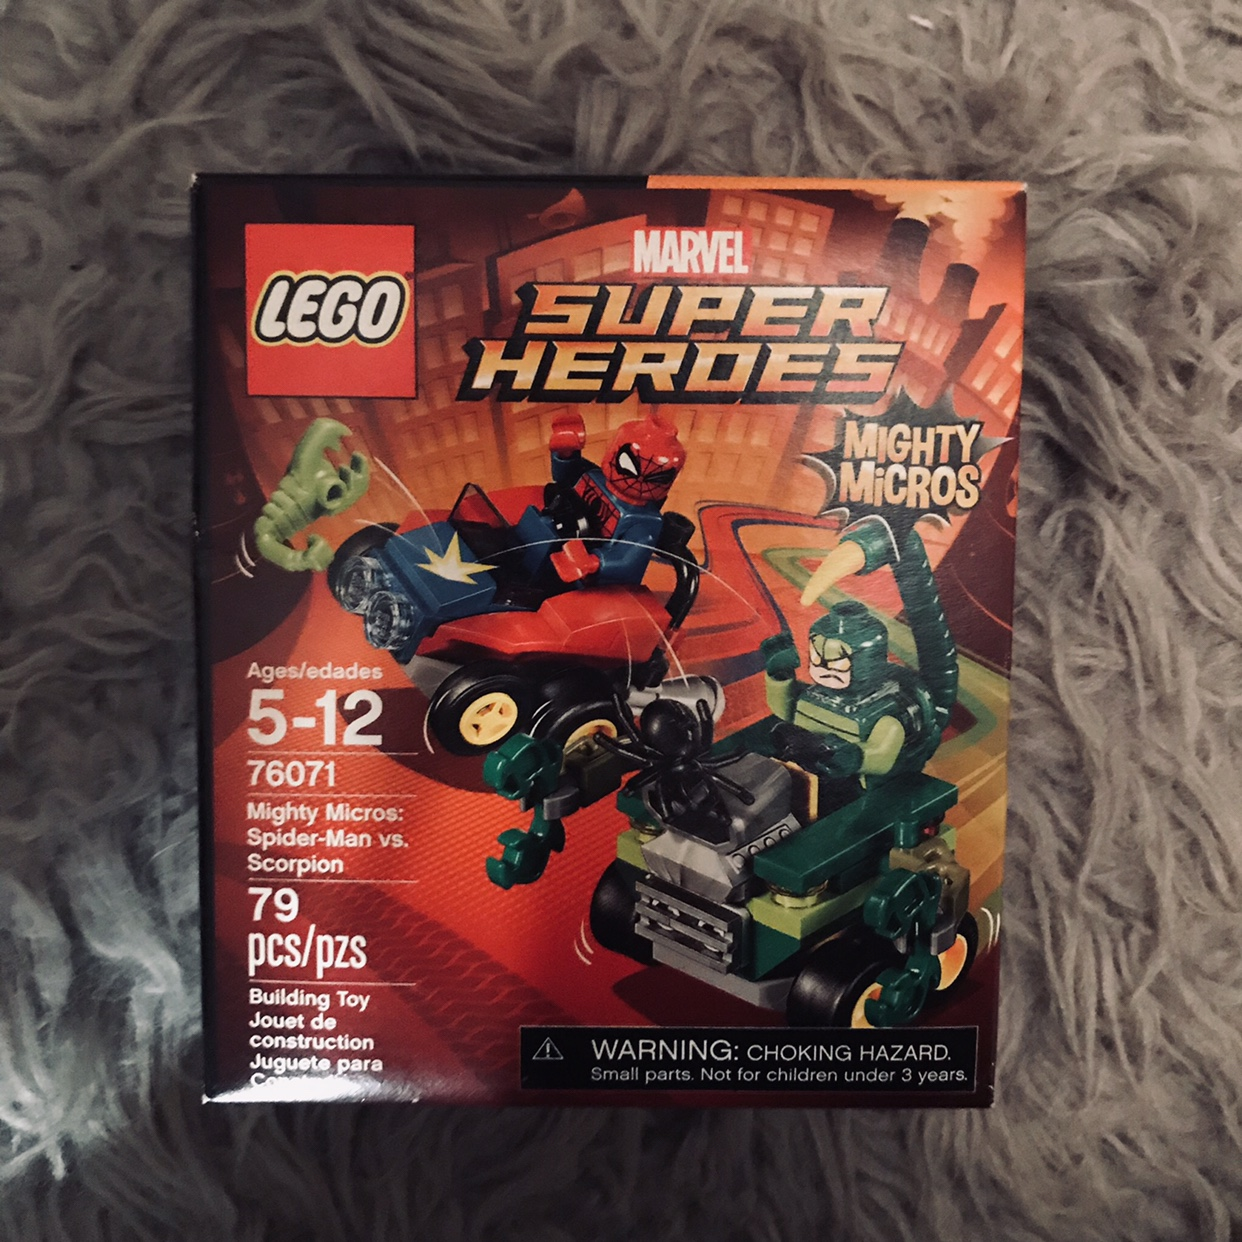 Man Heros Vs Lego Mighty Marvel Super Depop MicrosSpider eoBdCx